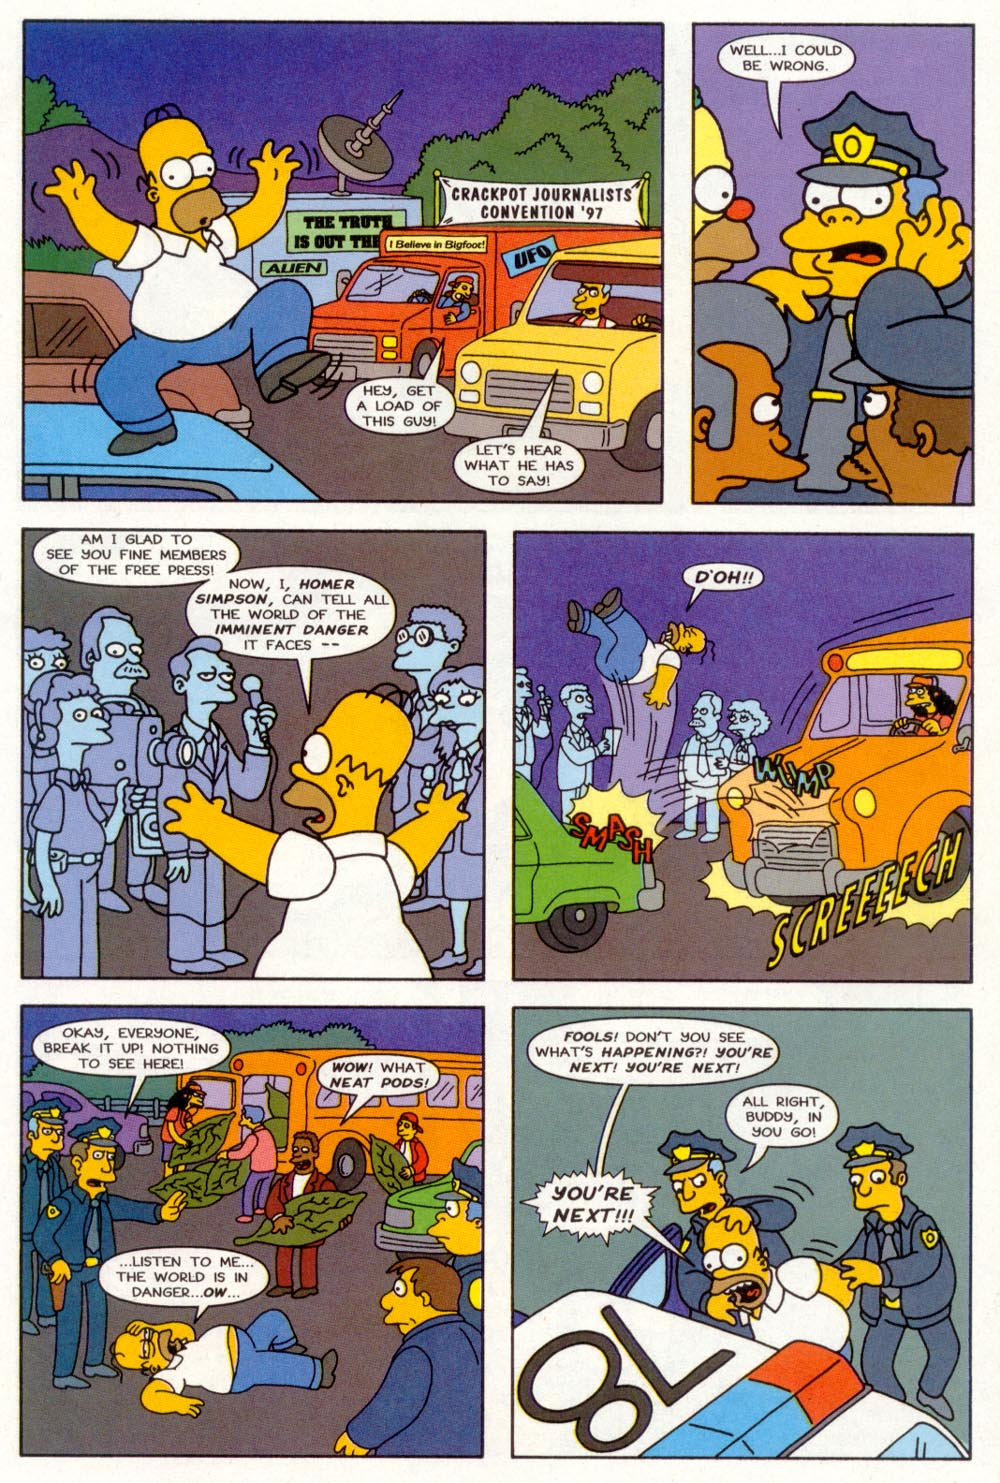 Read online Treehouse of Horror comic -  Issue #3 - 22